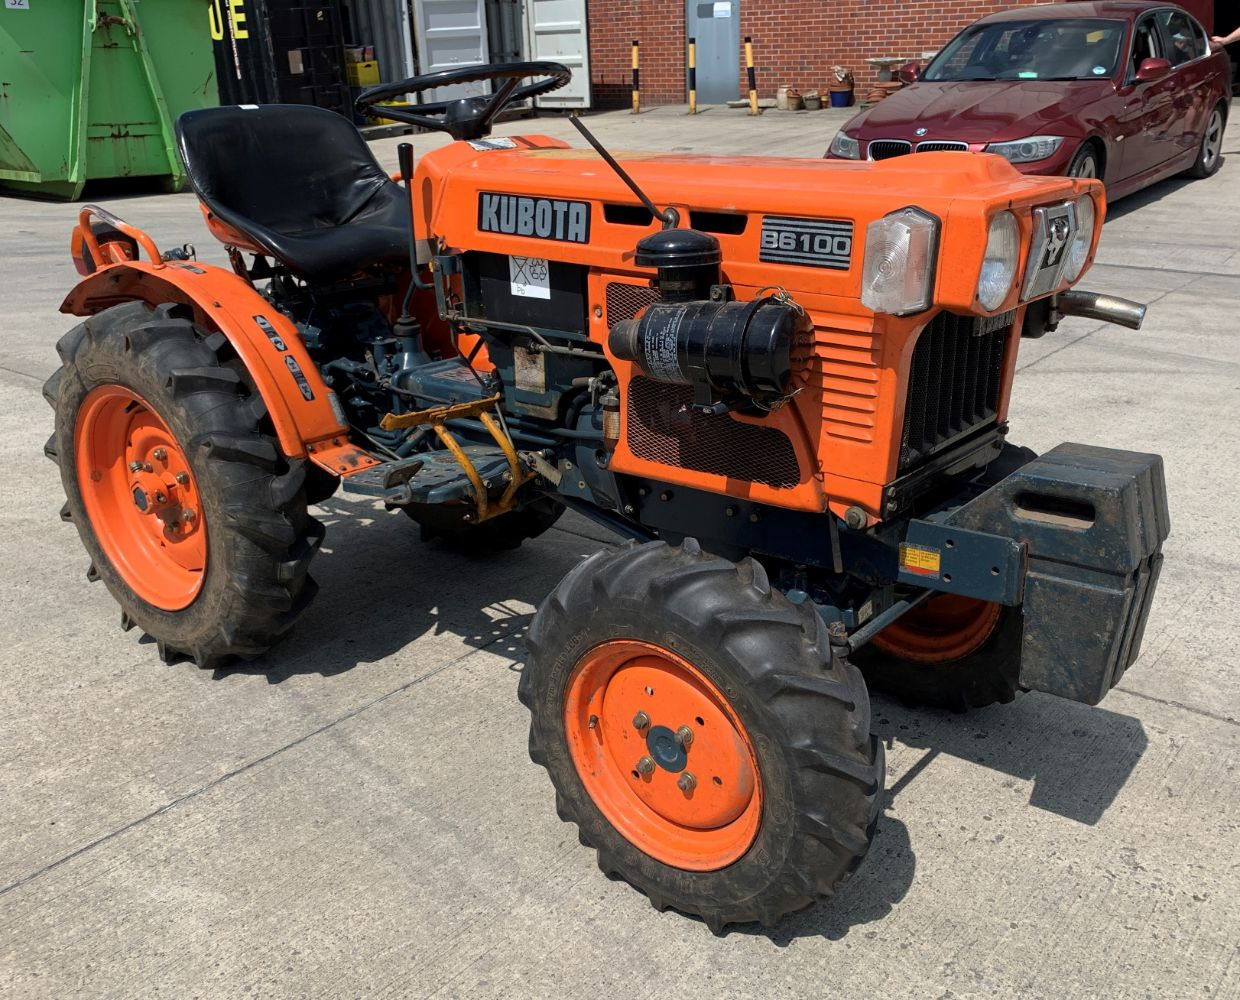 Vehicles, Kubota Tractor and Tractor Attachments